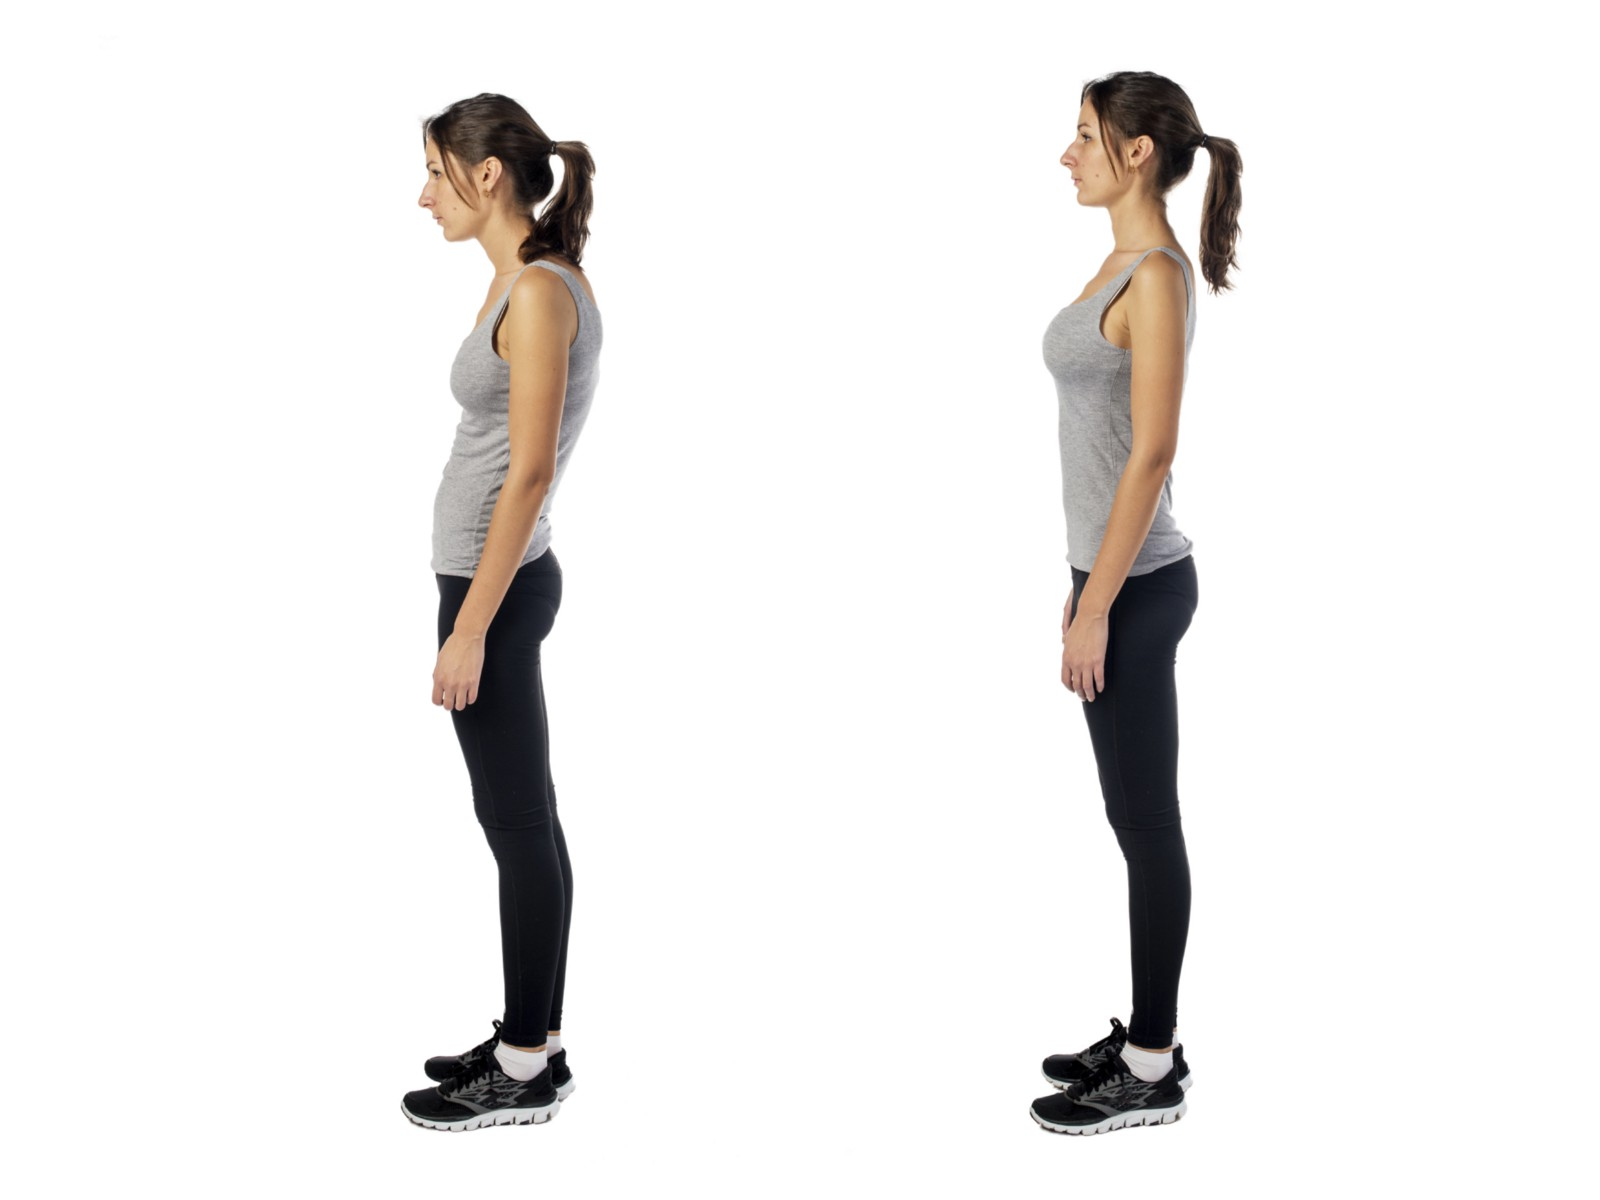 Image result for Poor Posture Hurts Your Health More Than You Realize